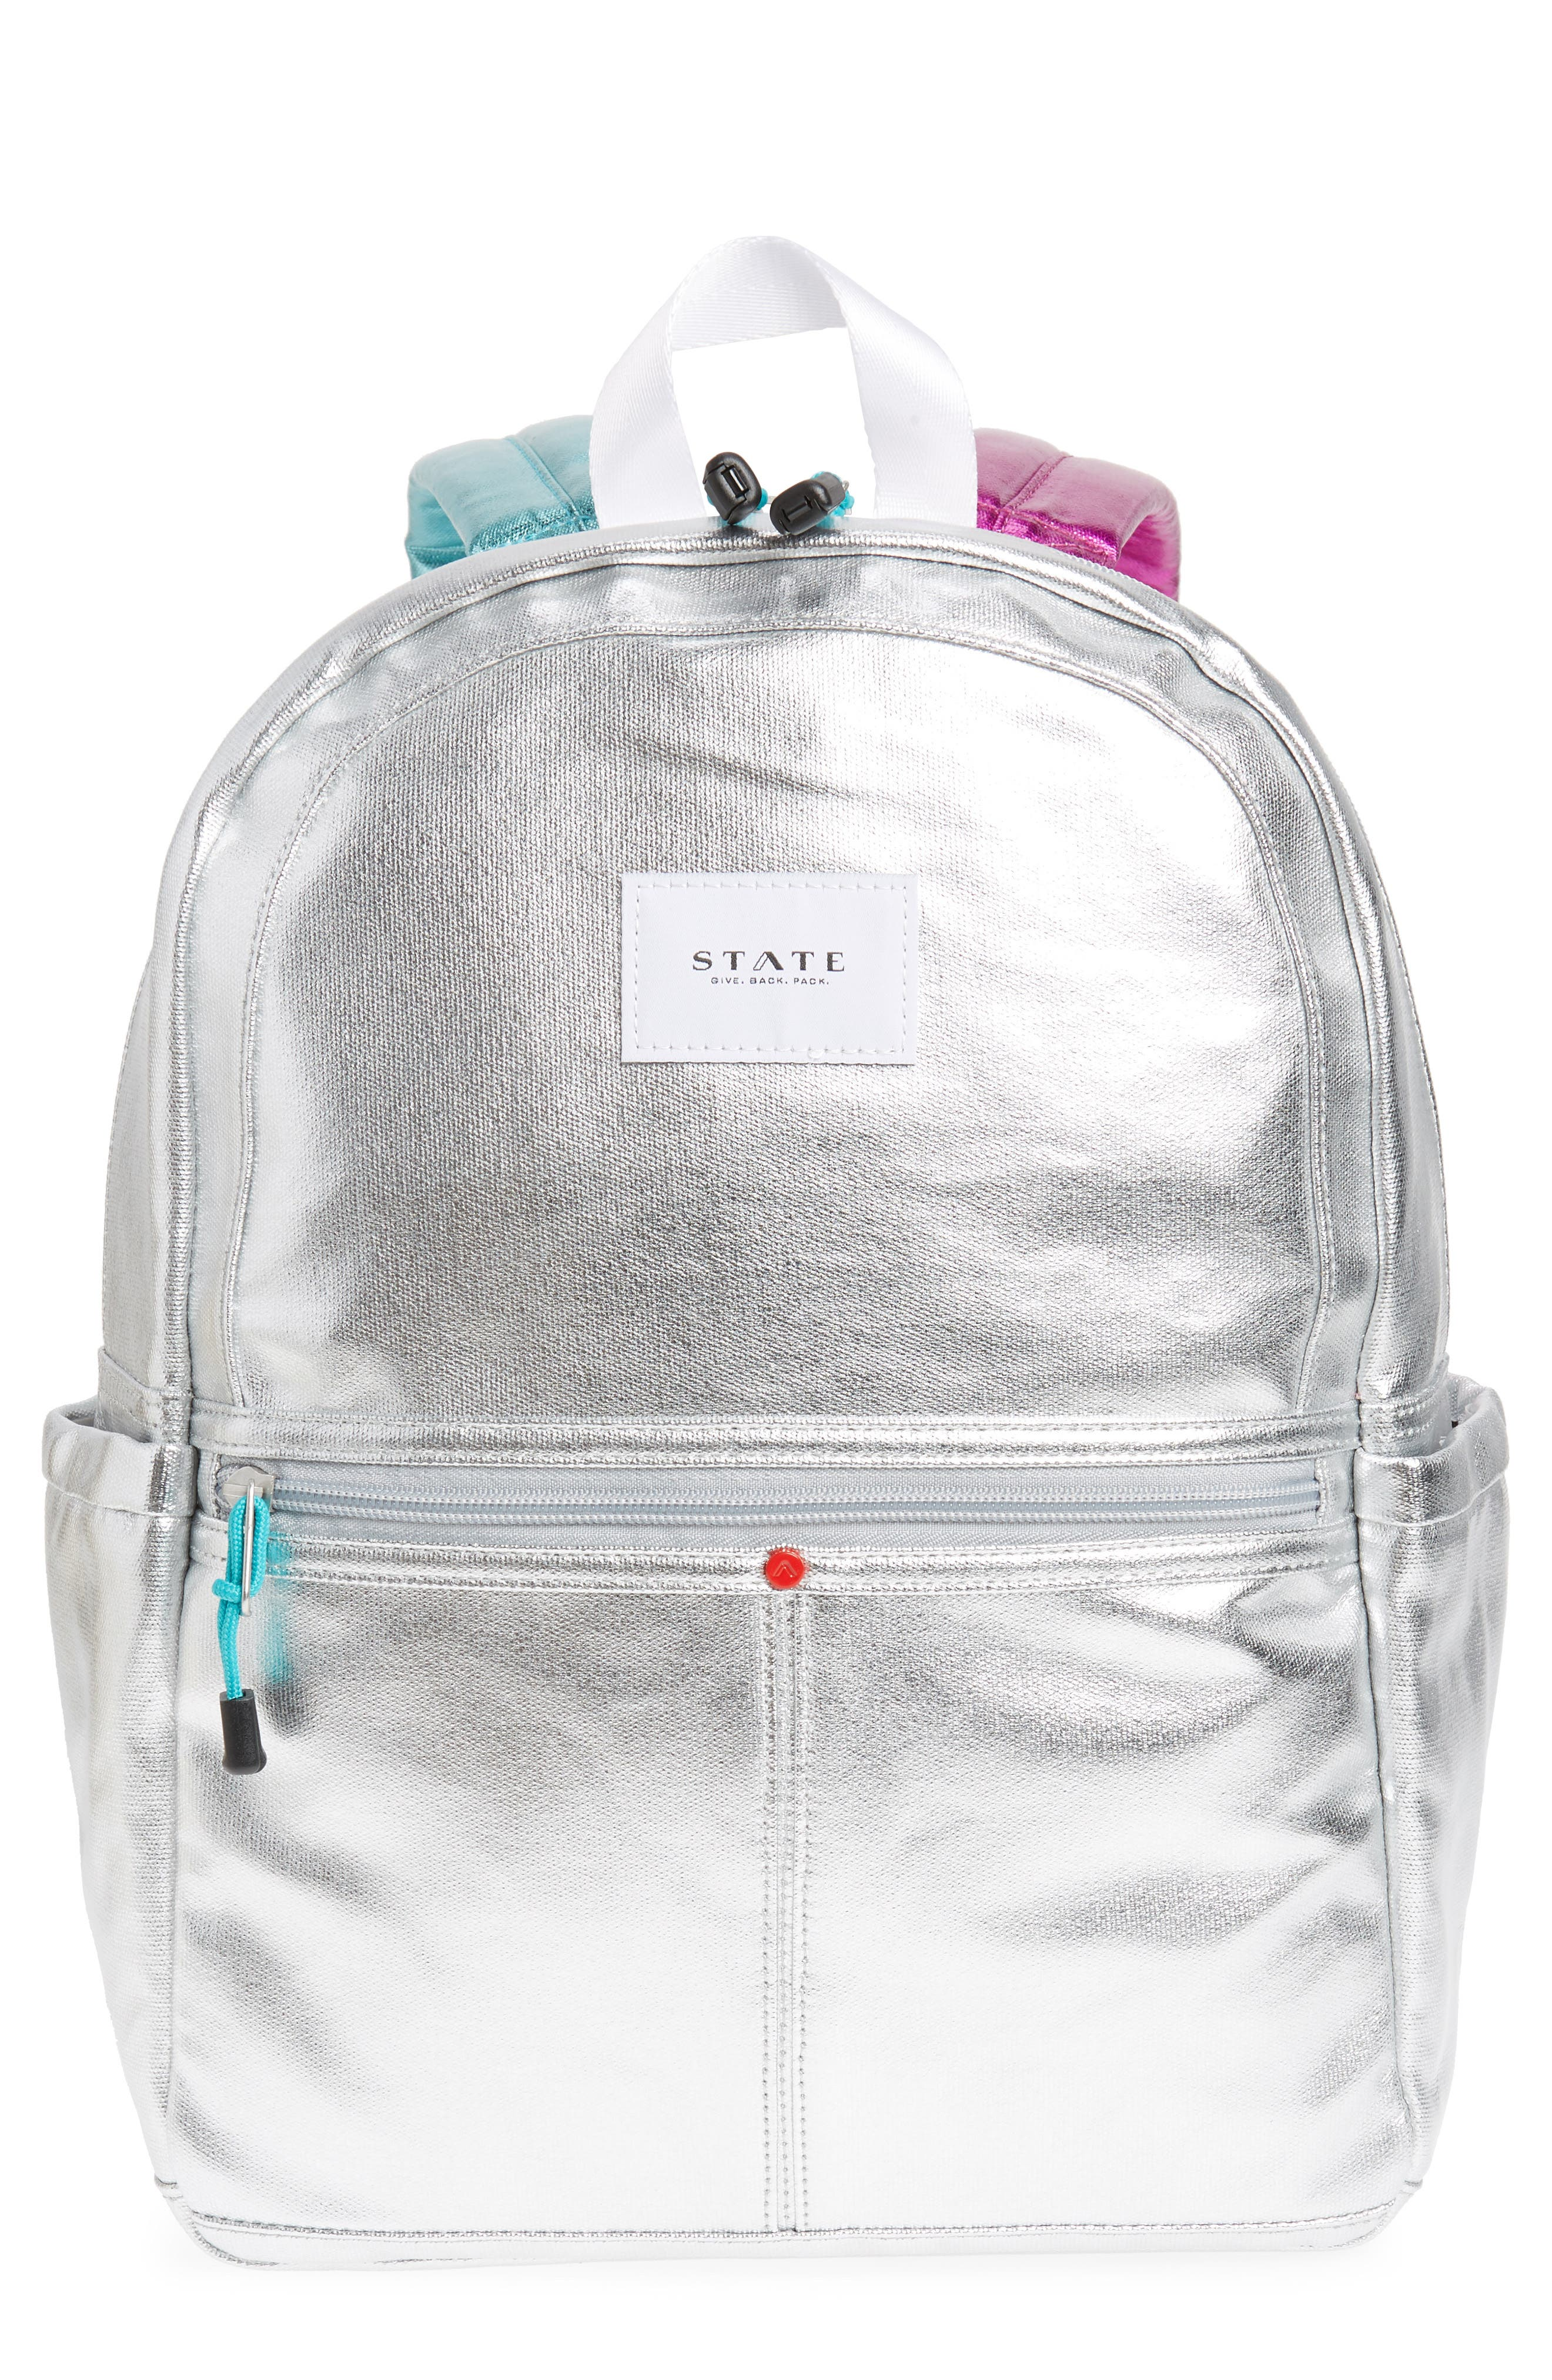 Kane Metallic Backpack,                             Main thumbnail 1, color,